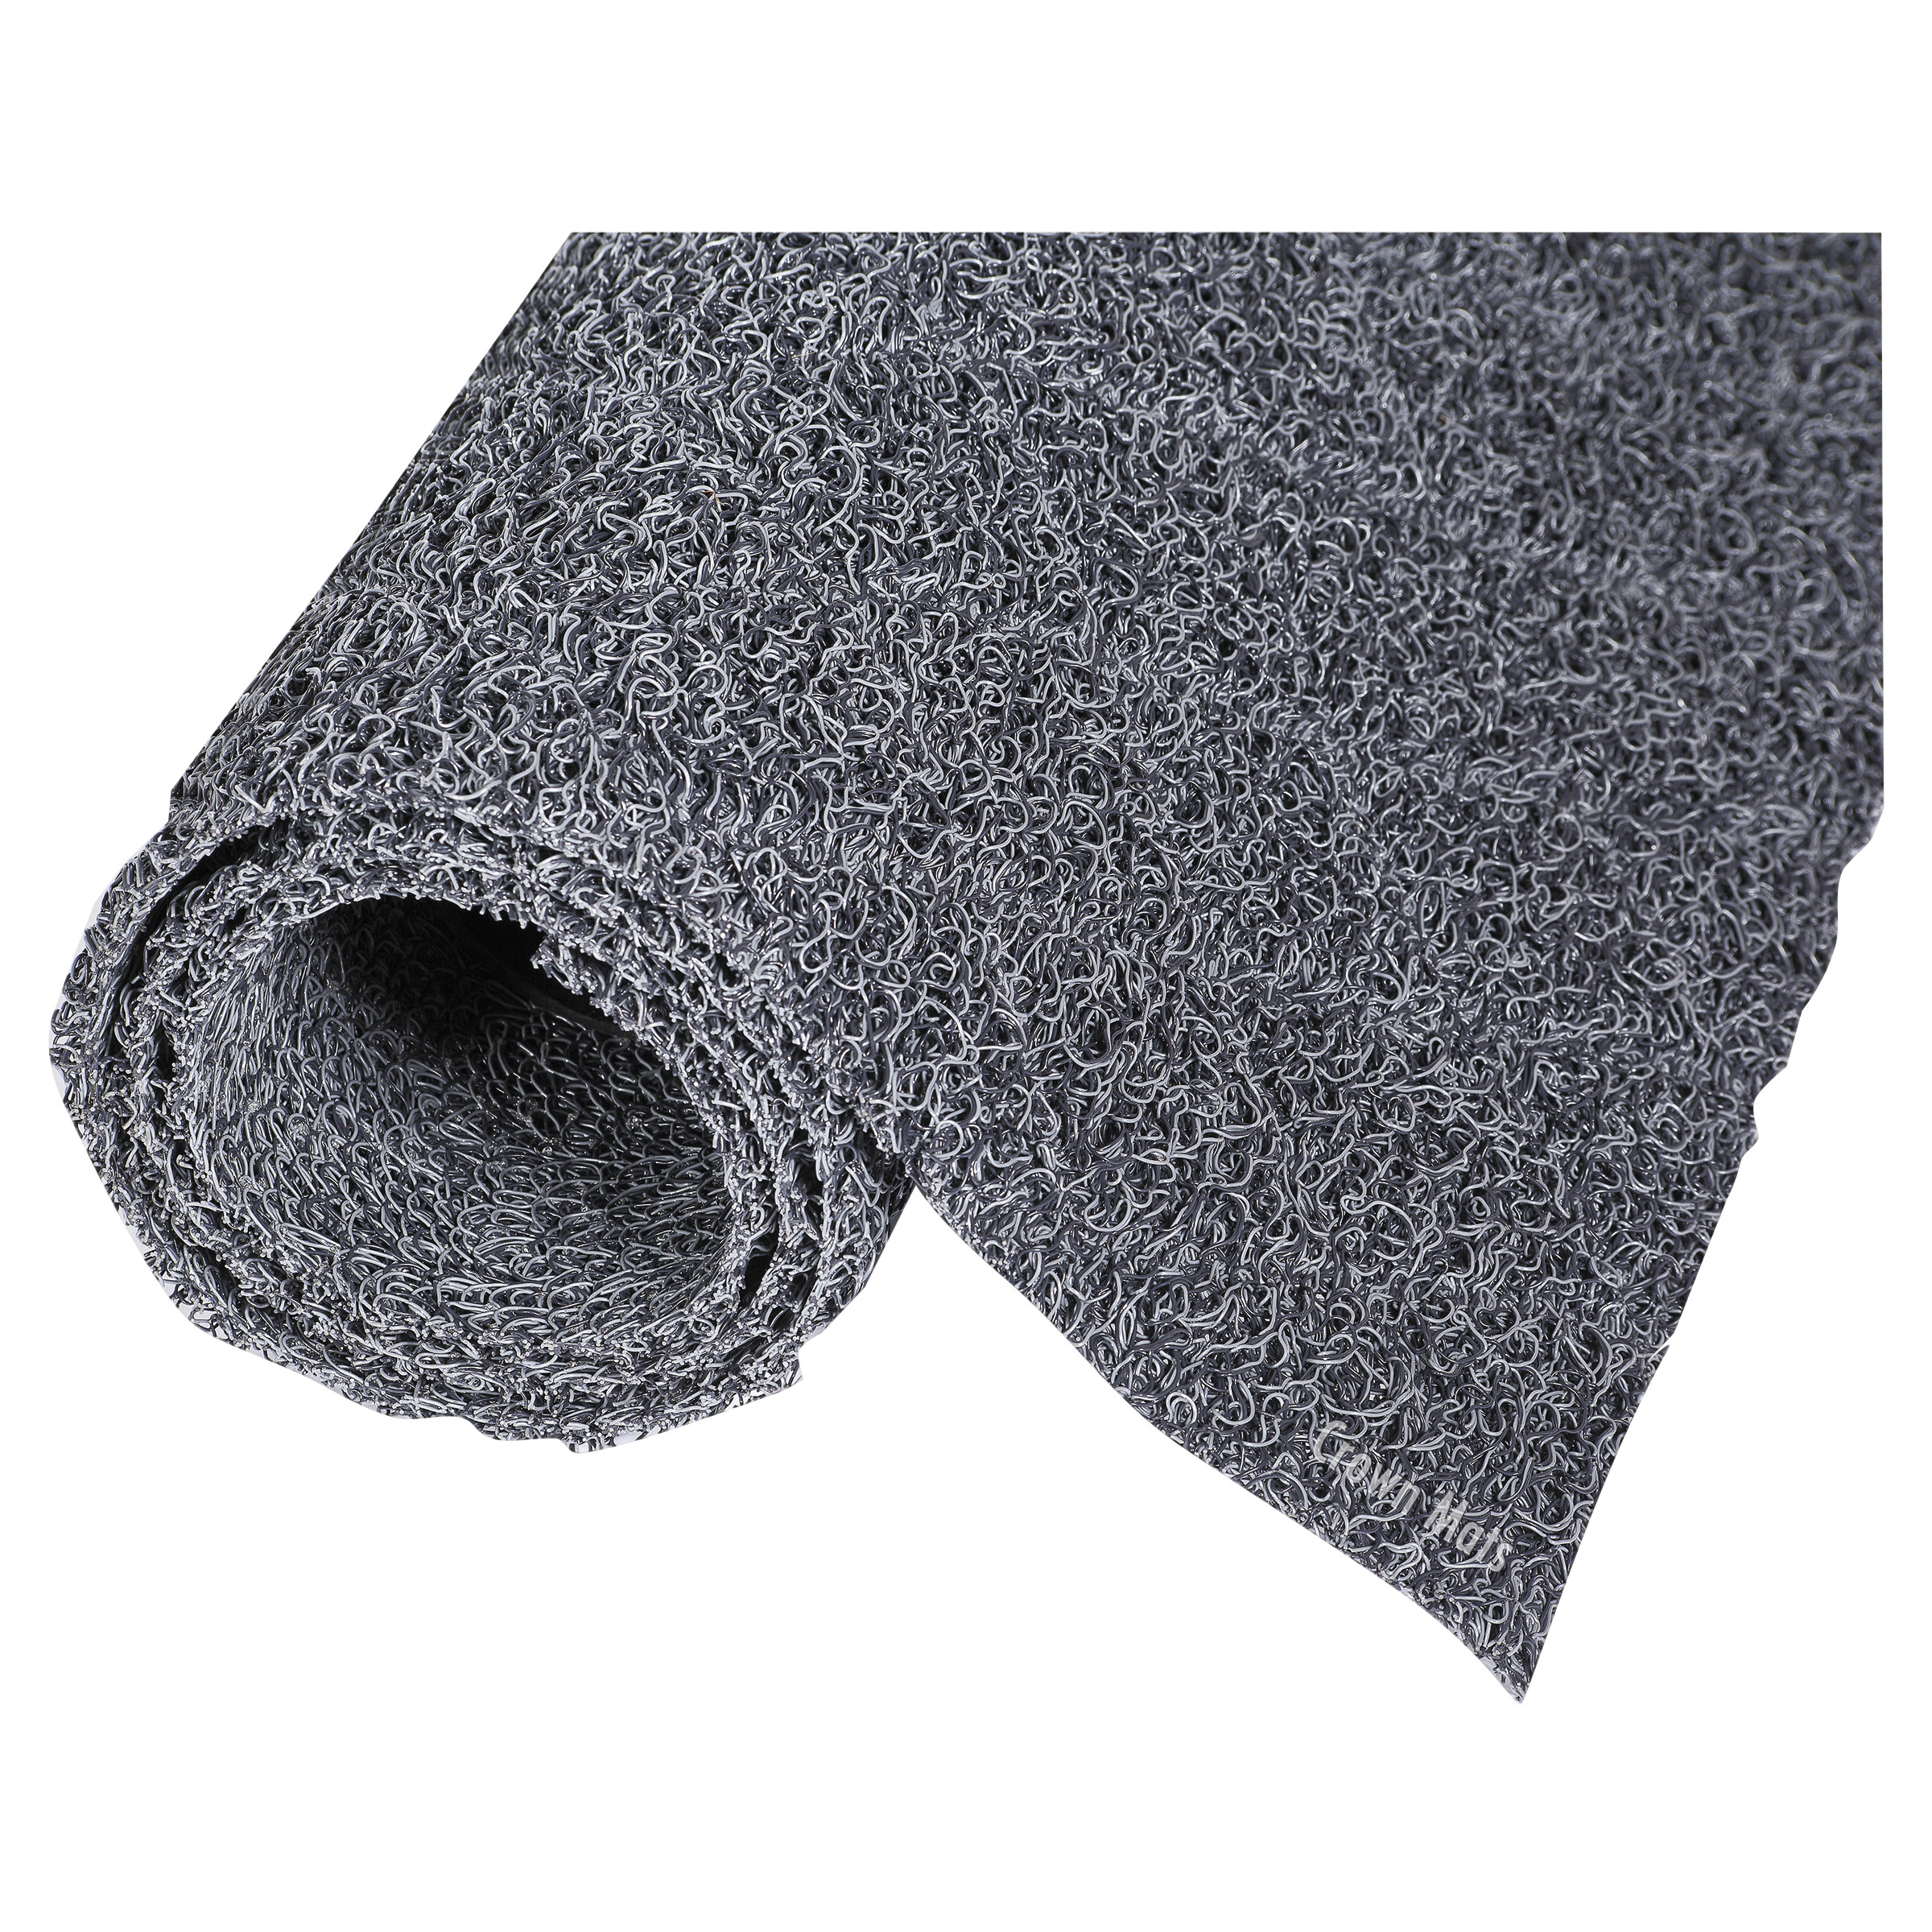 Crown Diamond Deluxe Duet Vinyl-Loop Scraper Mat, Vinyl, 36 x 240, Gray/Black